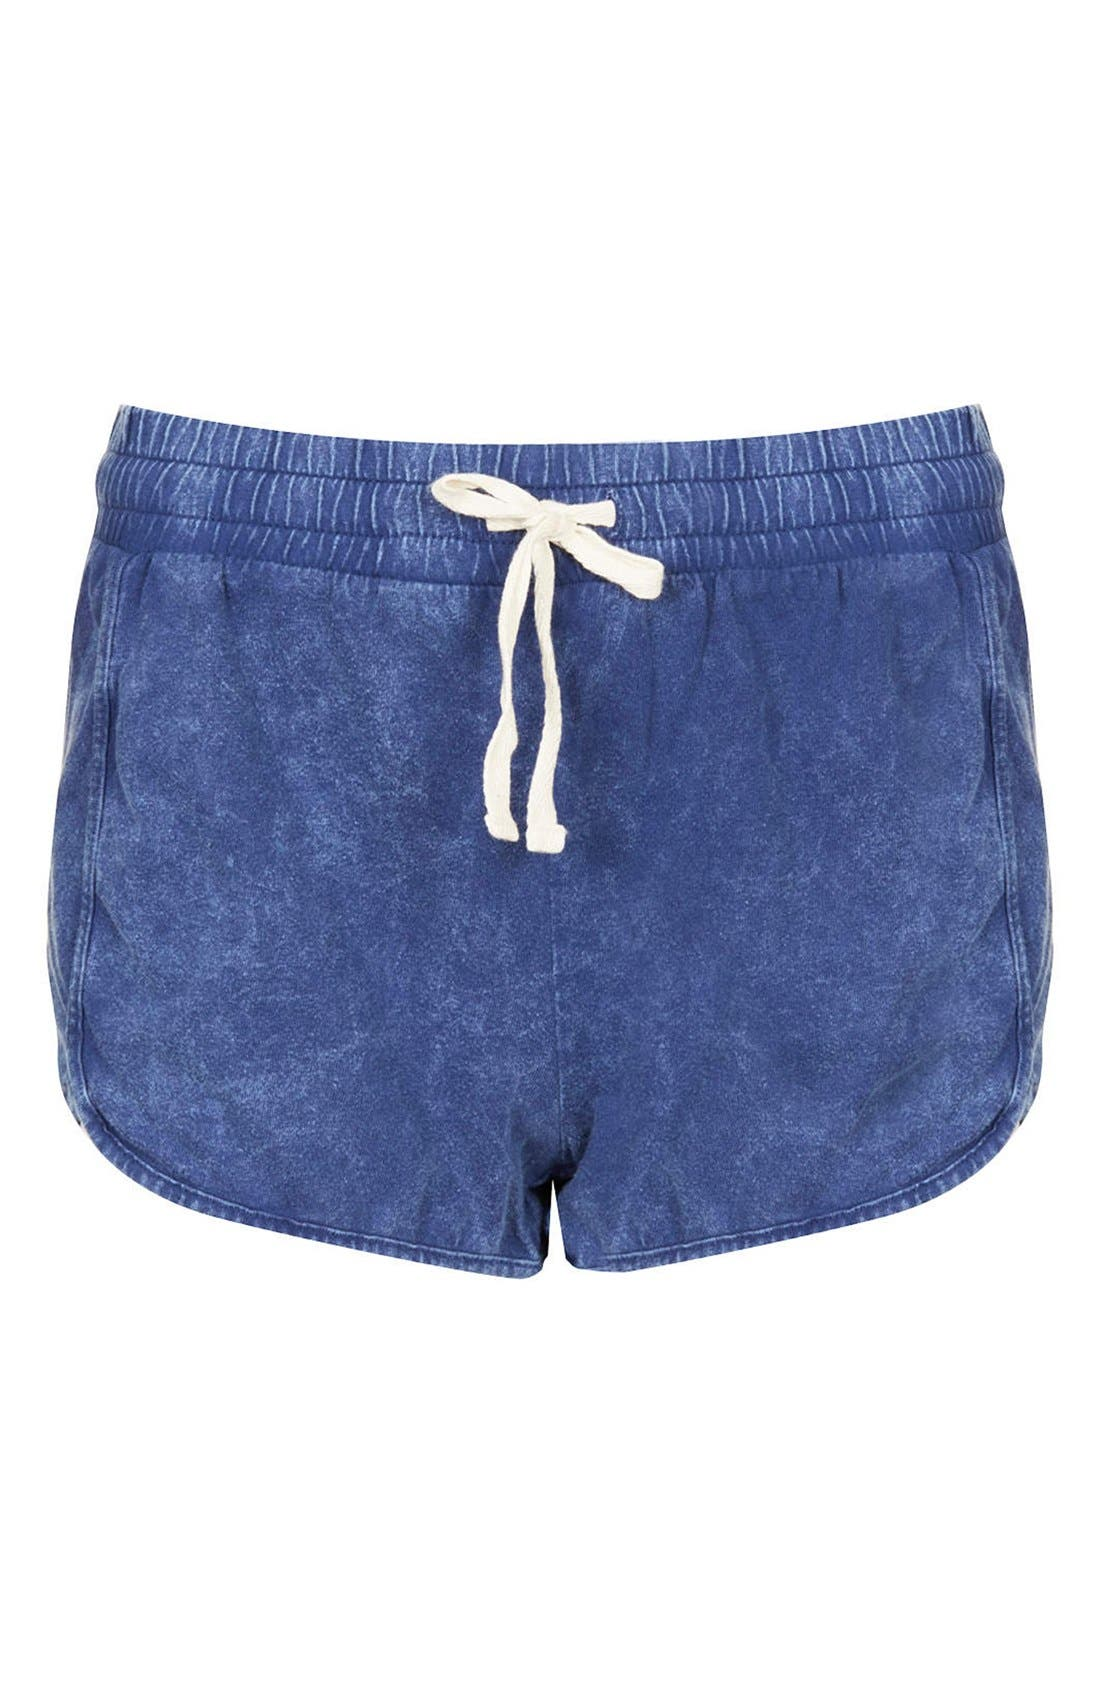 Alternate Image 3  - Topshop Chambray Dolphin Shorts